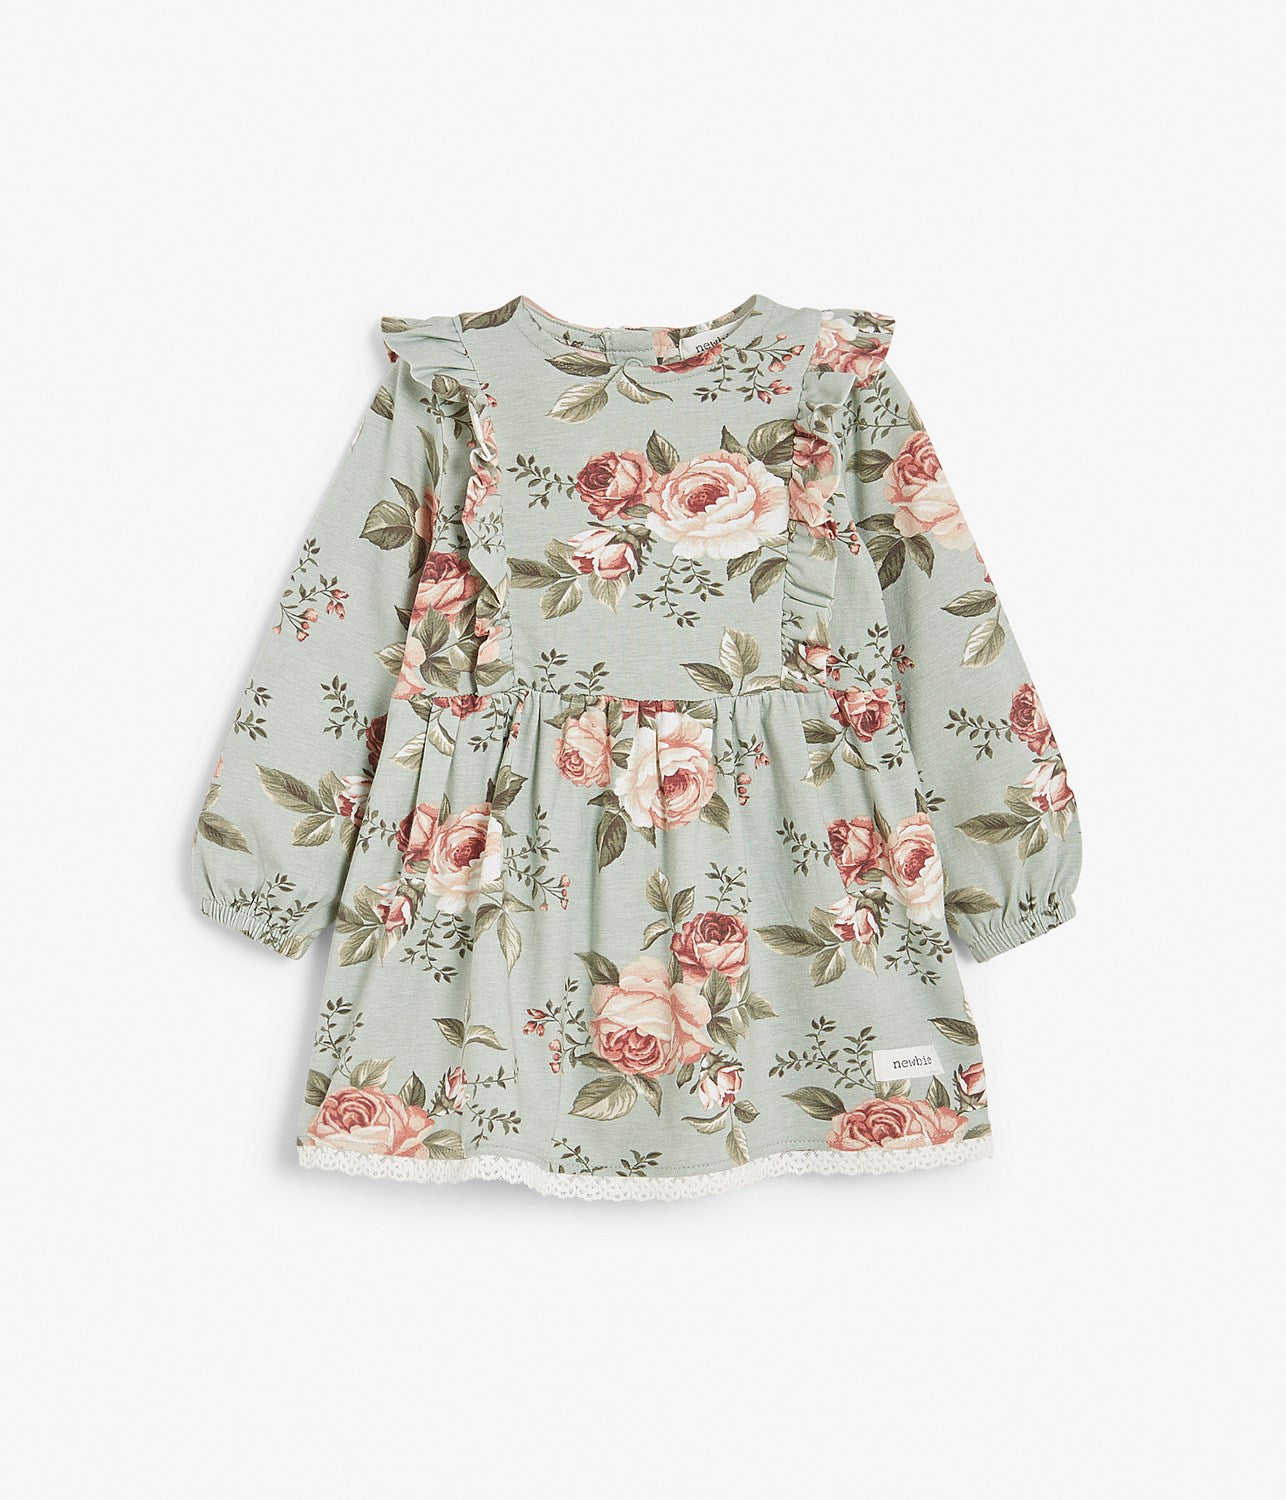 Baby green & pink floral print dress with ruffles